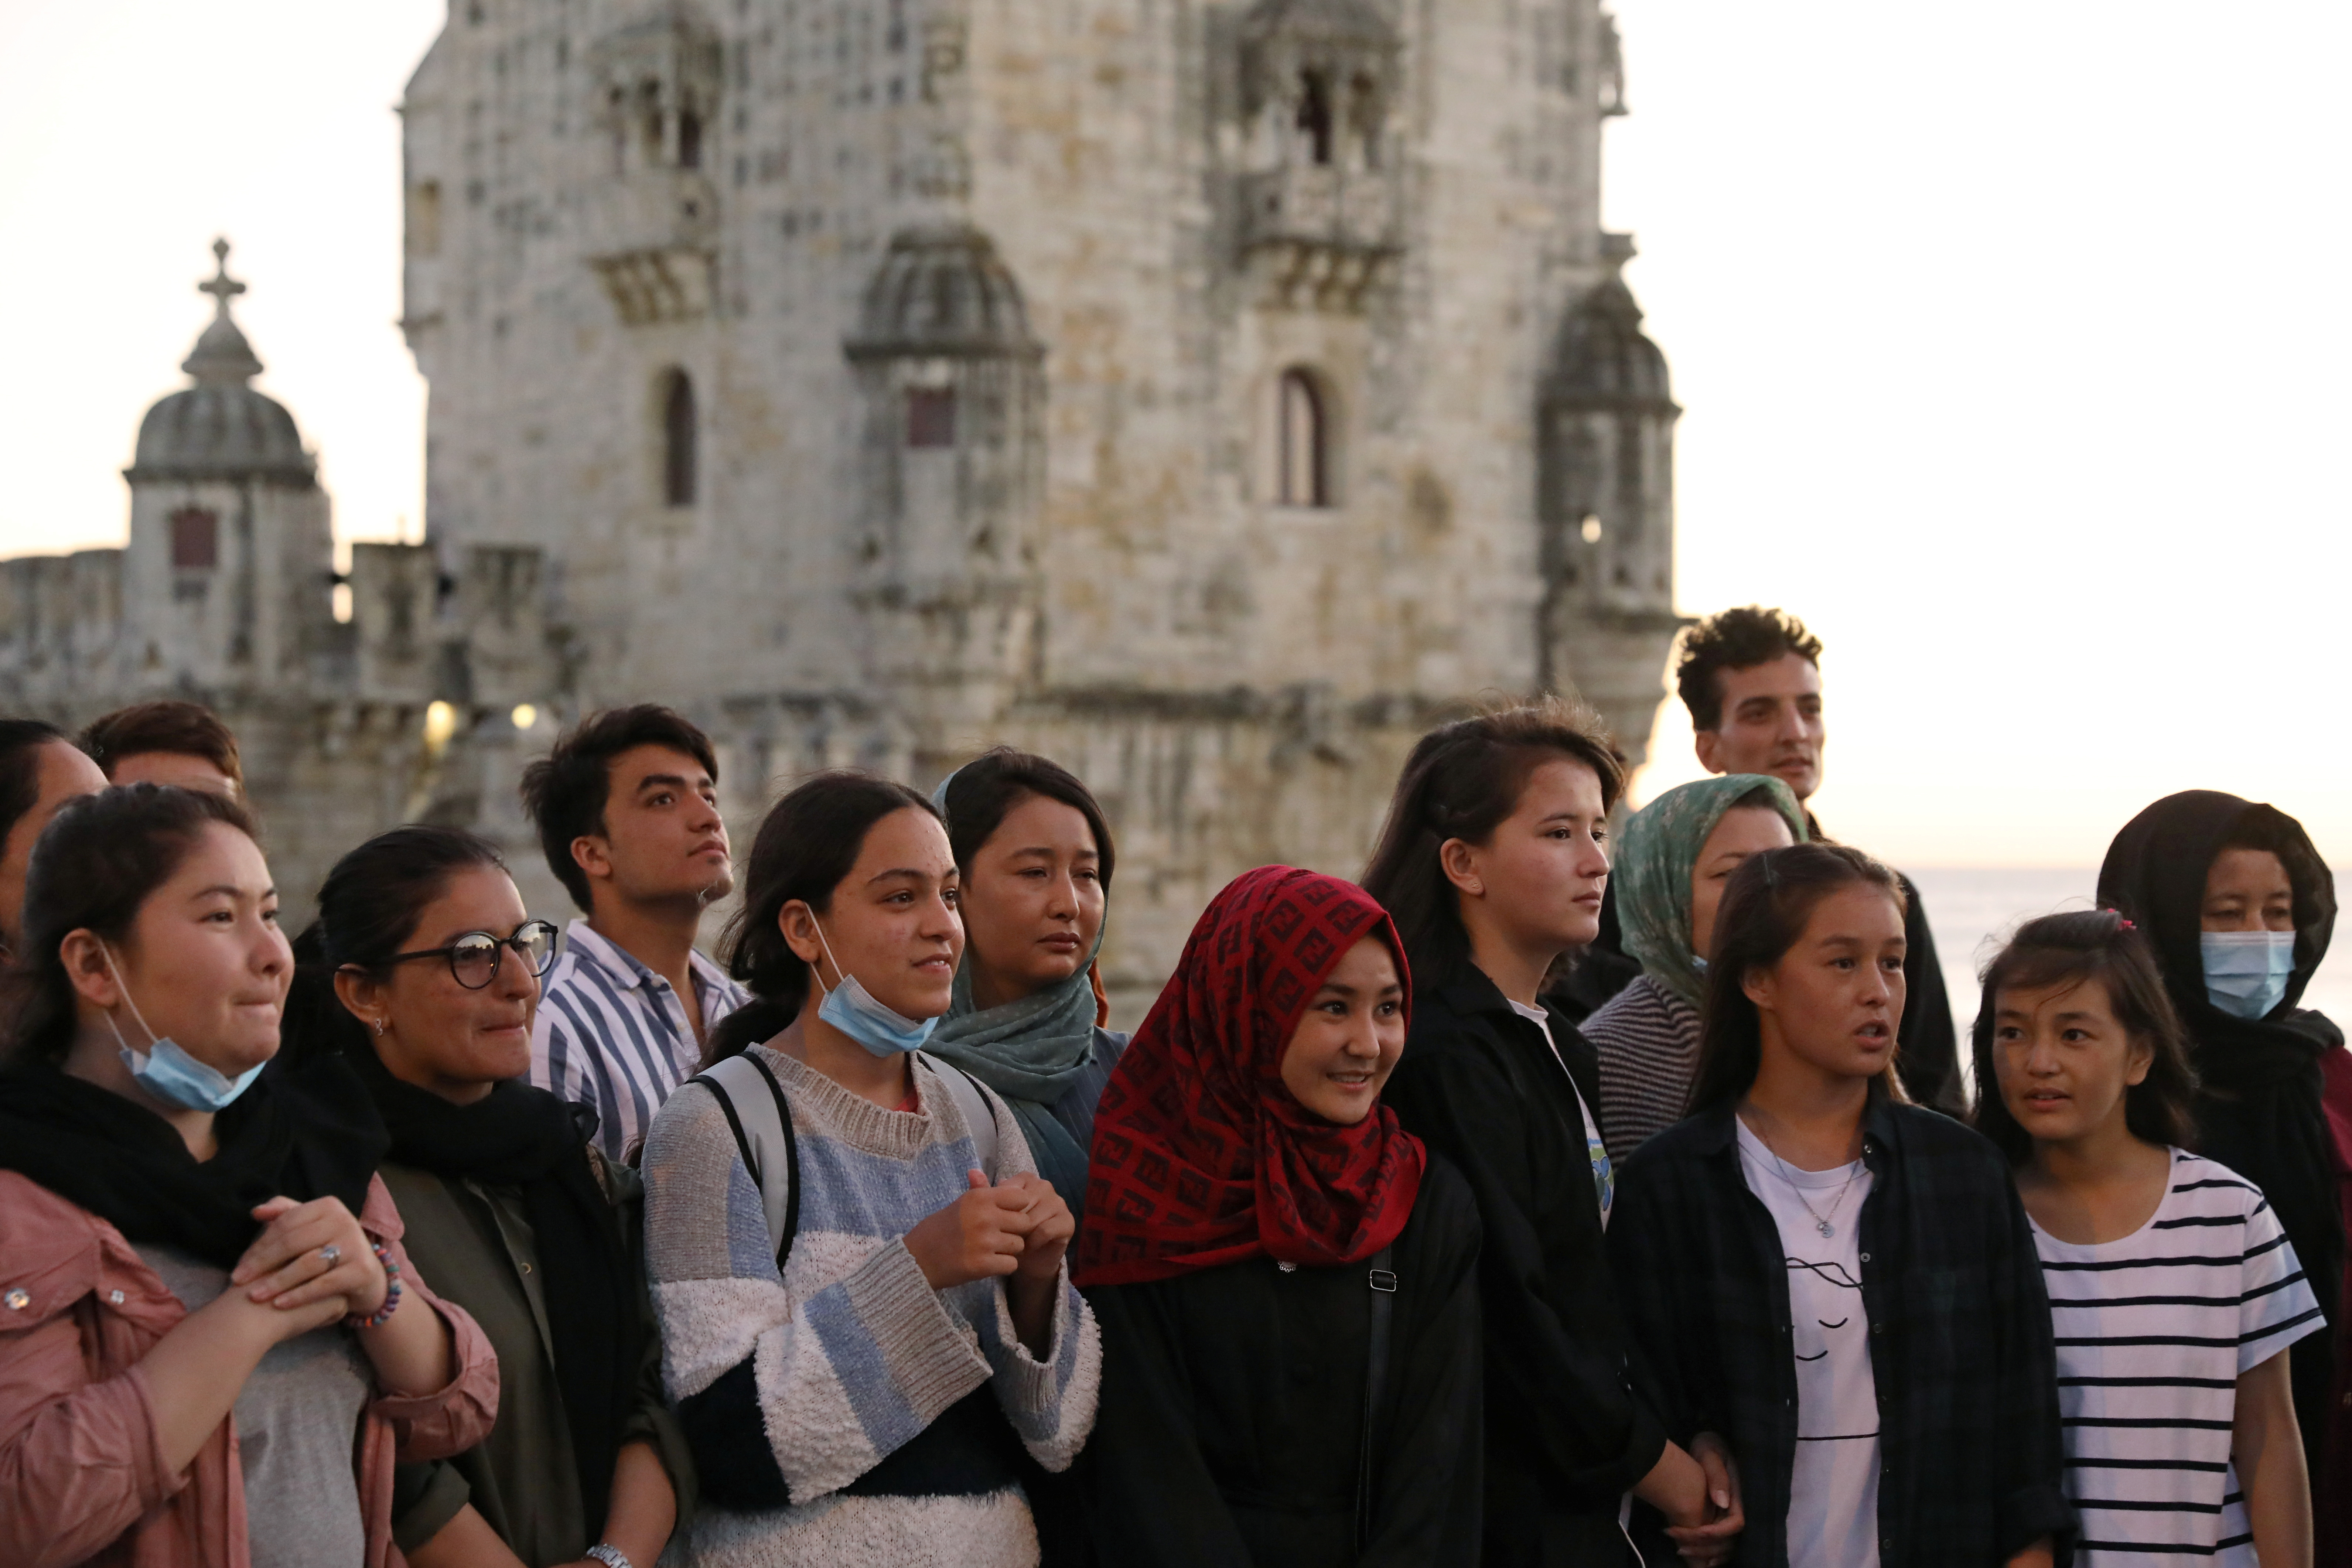 Players of Afghanistan's national women's football team stand near the Belem Tower in Lisbon, Portugal, September 29, 2021. REUTERS/Rodrigo Antunes